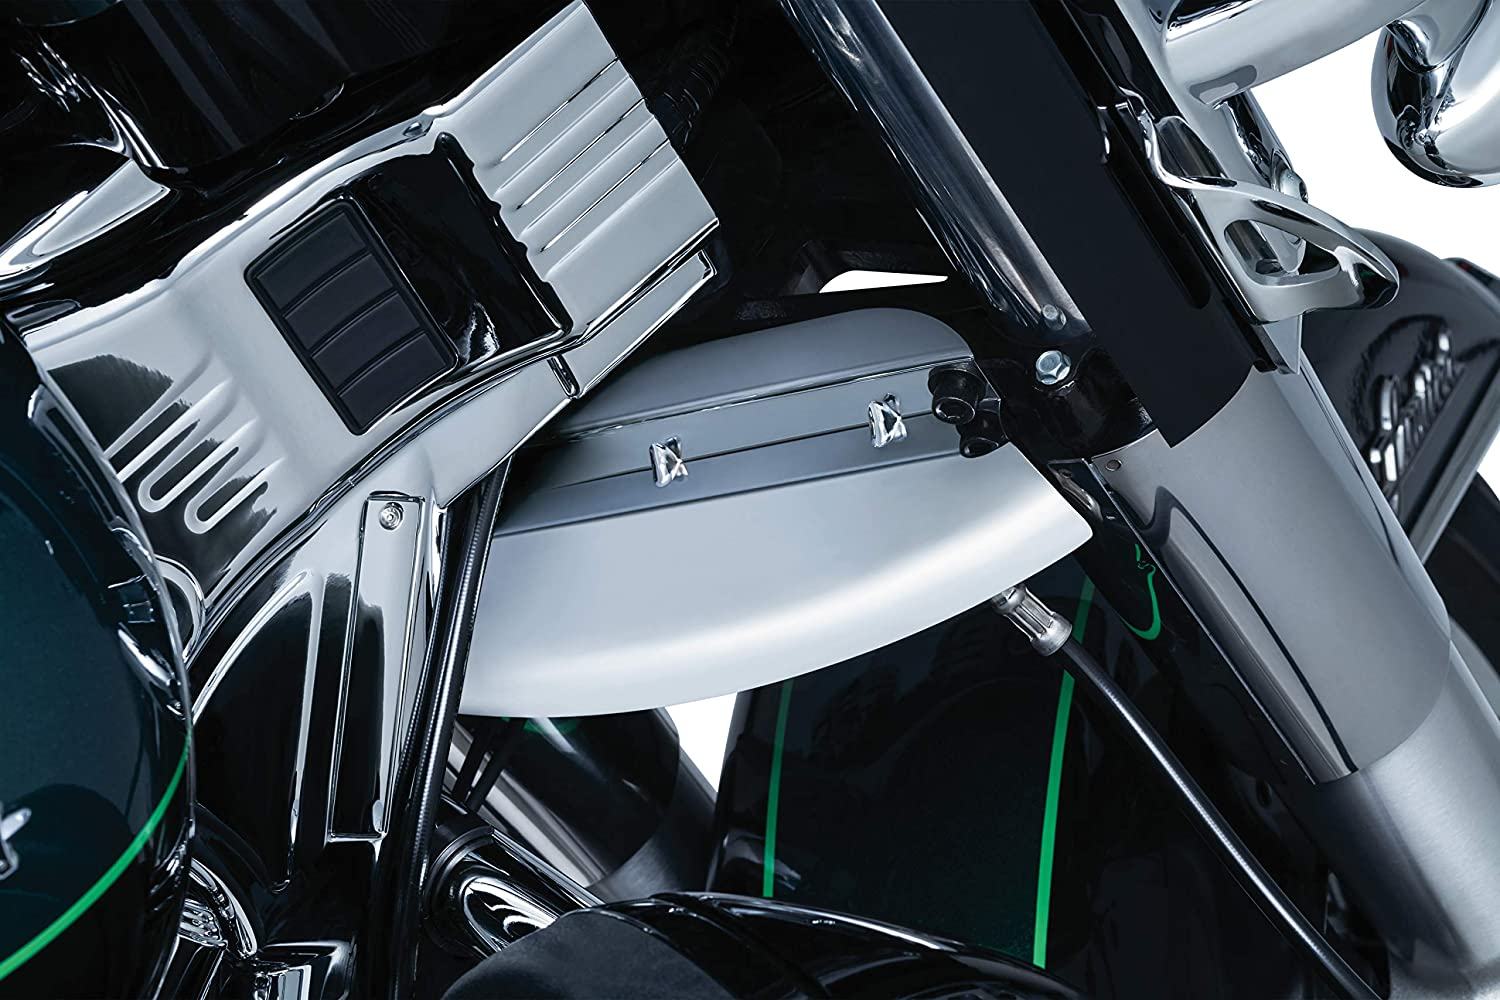 Kuryakyn 1805 Air Management Motorcycle Accessory Lower Triple Tree Wind Deflector for 2014-19 Harley-Davidson Touring Motorcycles Satin Black